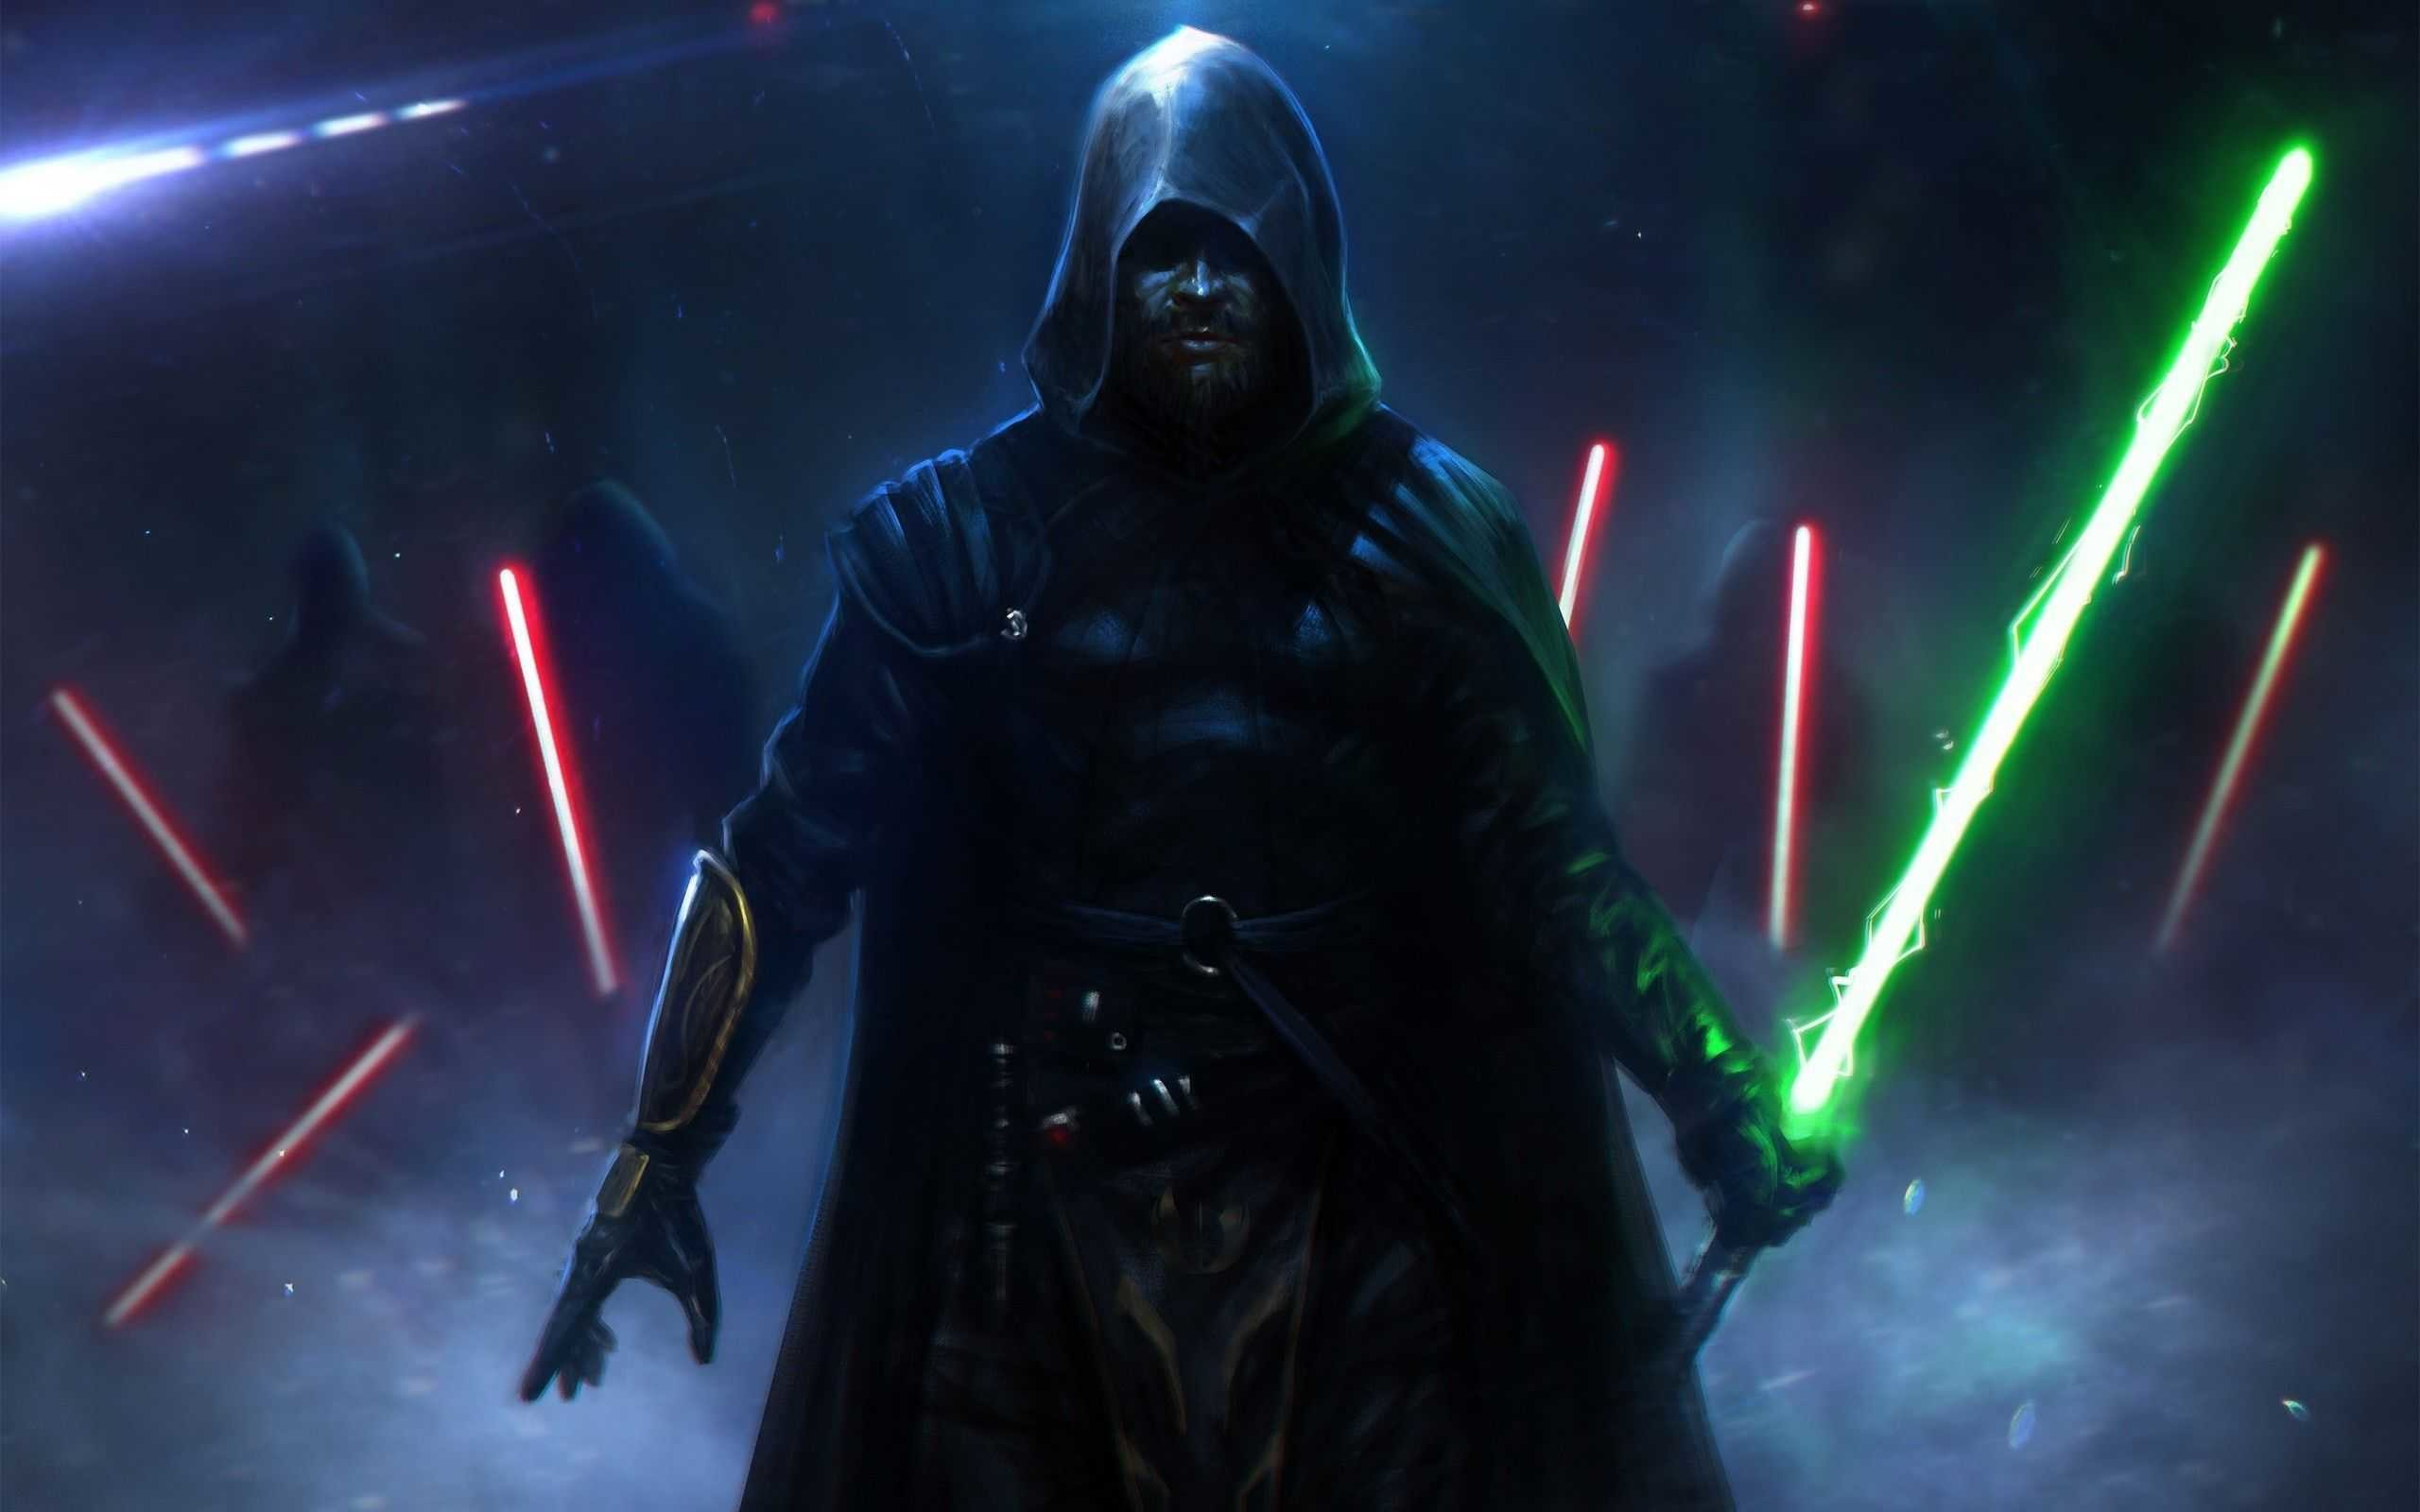 2560x1600 star wars jedi wallpaper hd - http://hdwallpaper.info/star-